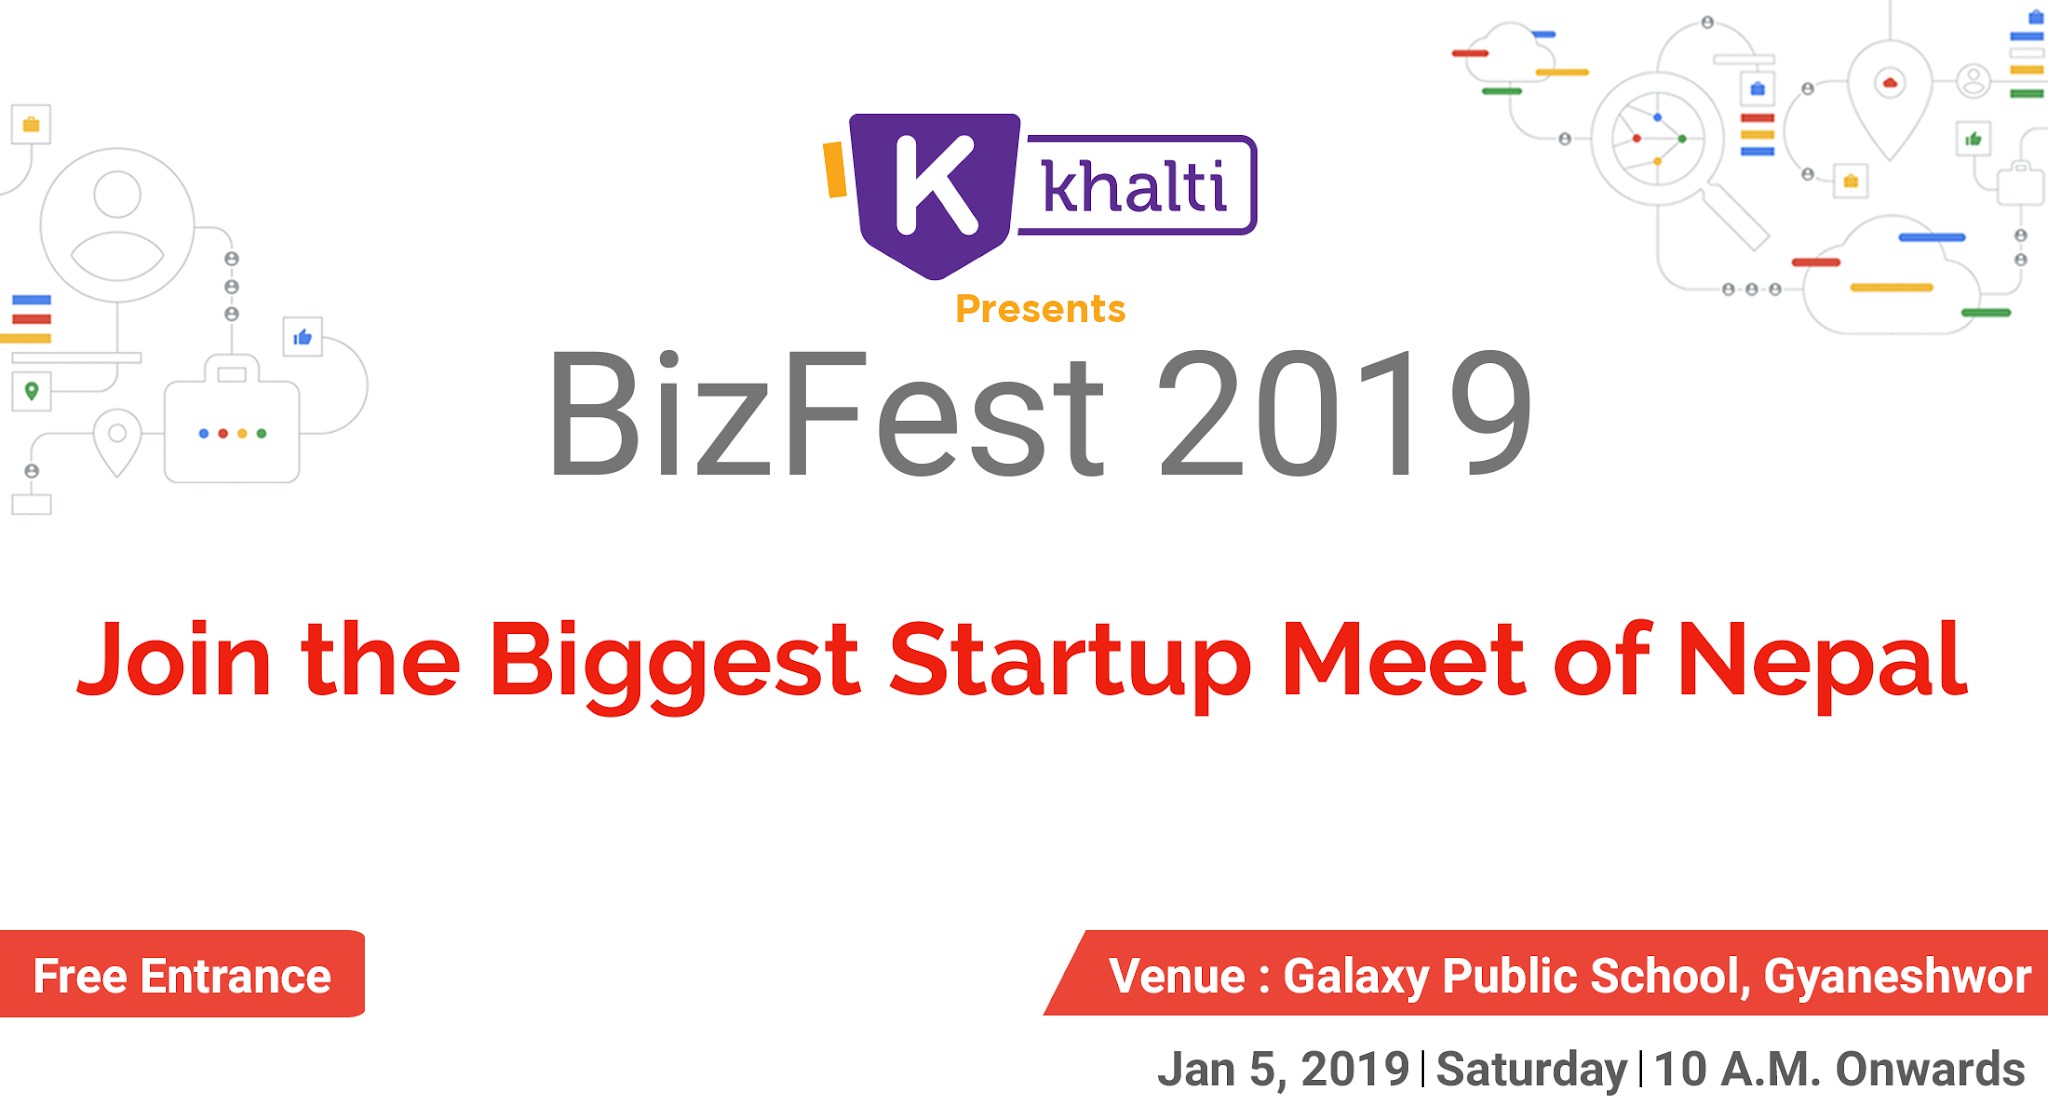 GBG BizFest 2019, Nepal's Biggest Startup-Meet is just a few days away! Are you excited?